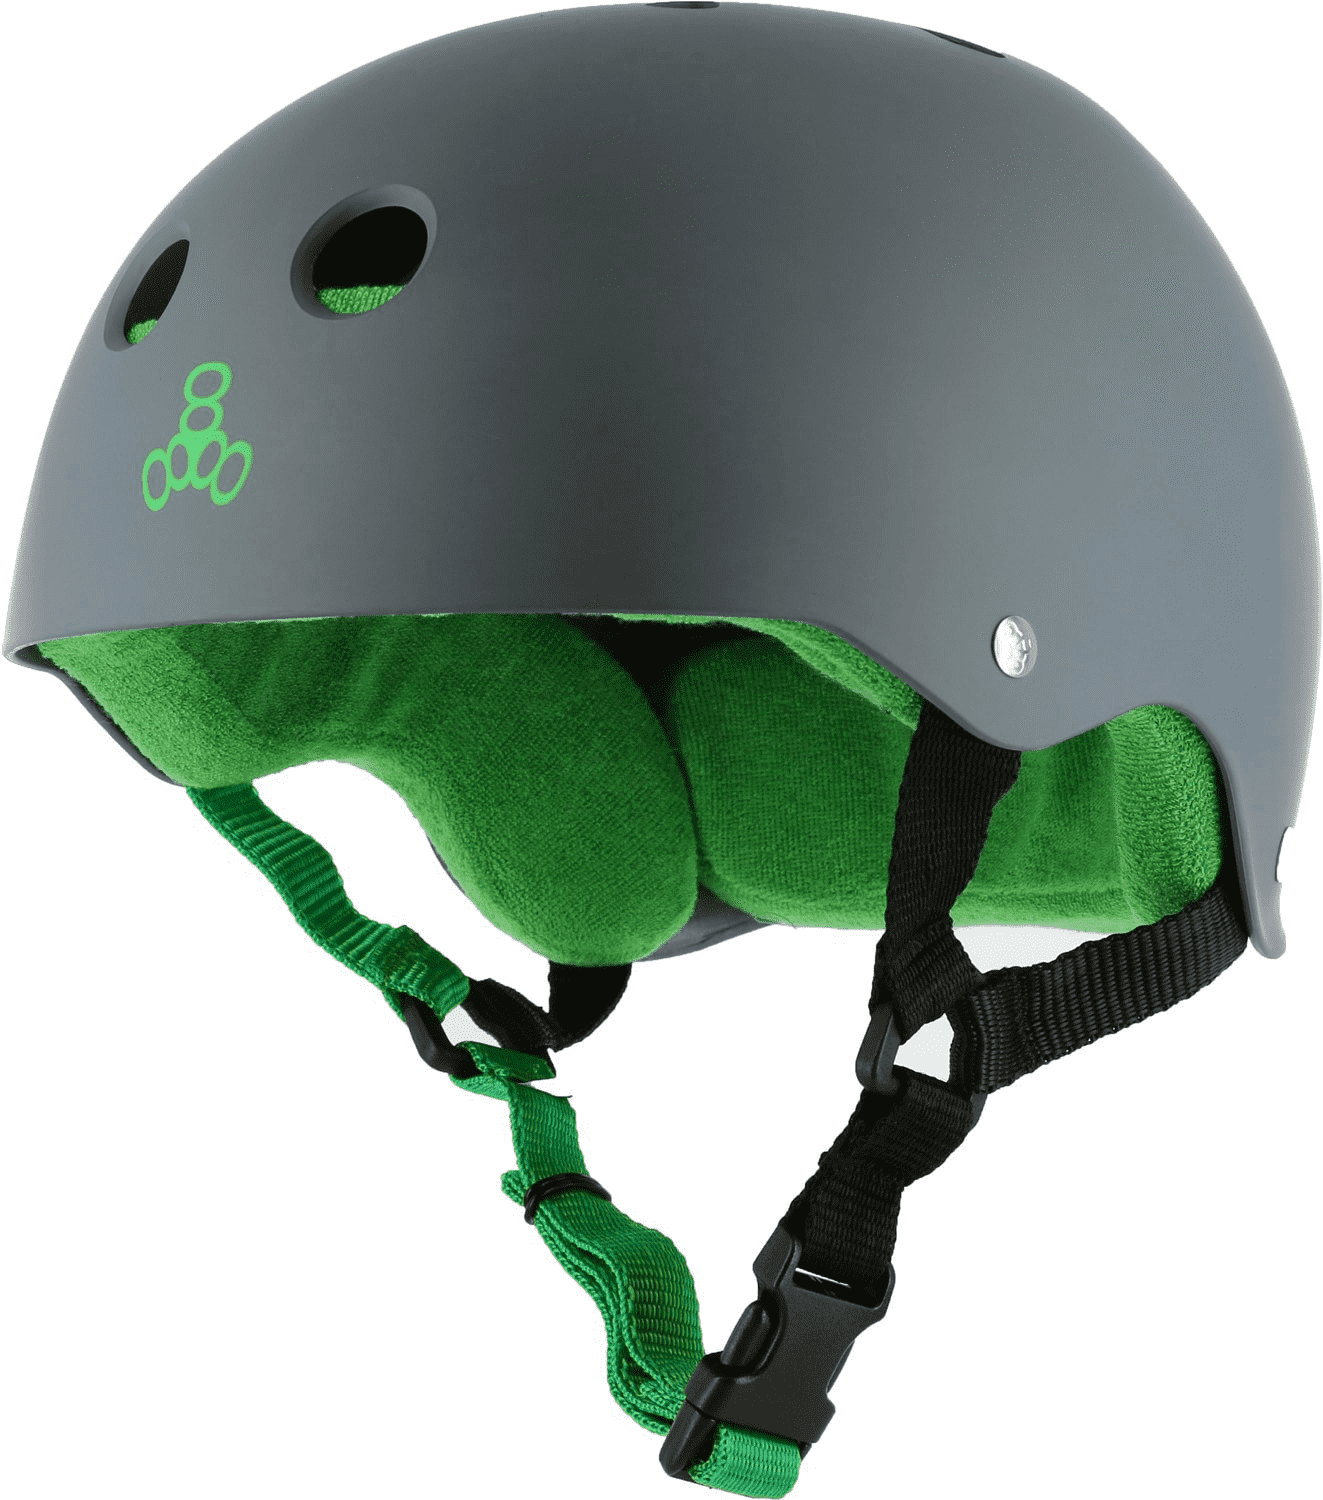 Triple 8 Brainsaver Helmet Carbon Rubber/Green - Feet First NJ